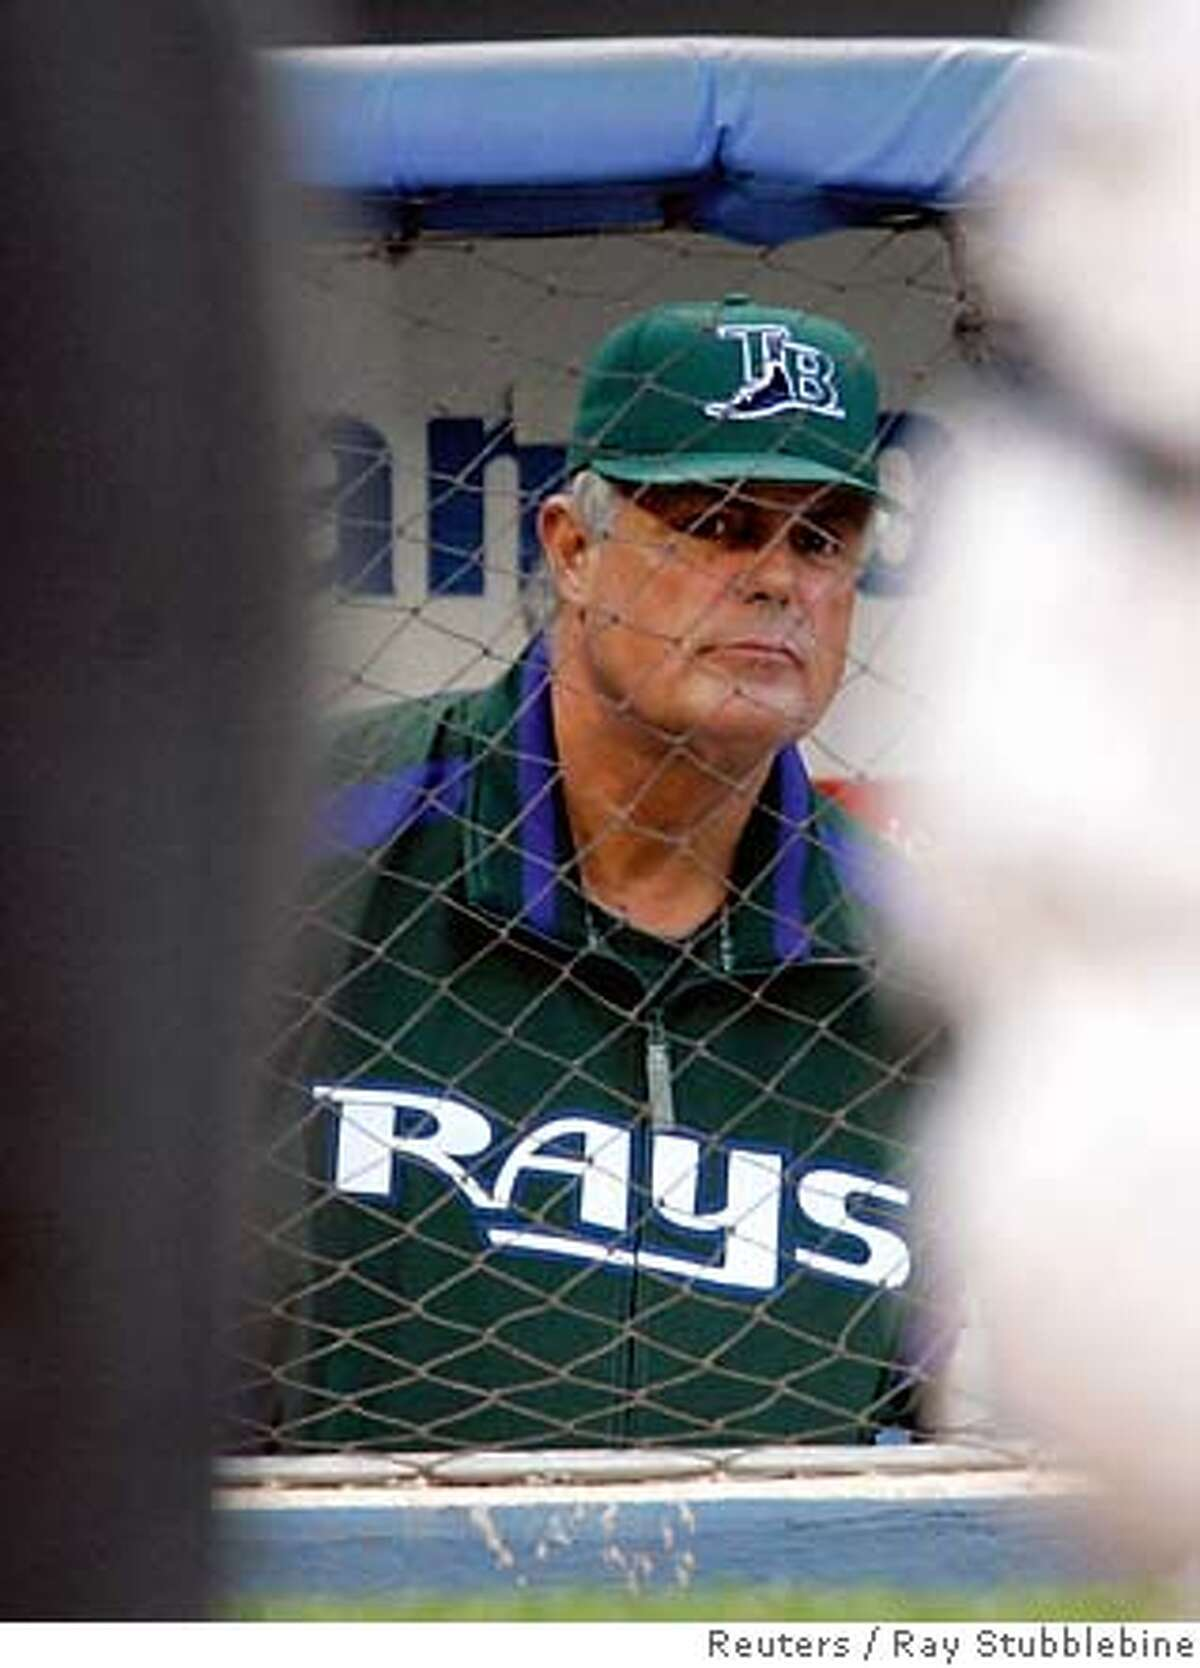 Tampa Bay Devil Rays manager Lou Piniella watches his team's game with the New York Yankees in the second inning of the game at Yankee Stadium in New York June 20, 2005. The former Yankees manager is now managing the team with the worst record in the American League, but the Devil Rays beat the Yankees 5-4 to end the Yanks' six-game winning streak. REUTERS/Ray Stubblebine Ran on: 06-21-2005 Lou Piniella says the lure and challenge (of getting) better is why he will honor the remainder of his contract with Tampa Bay.